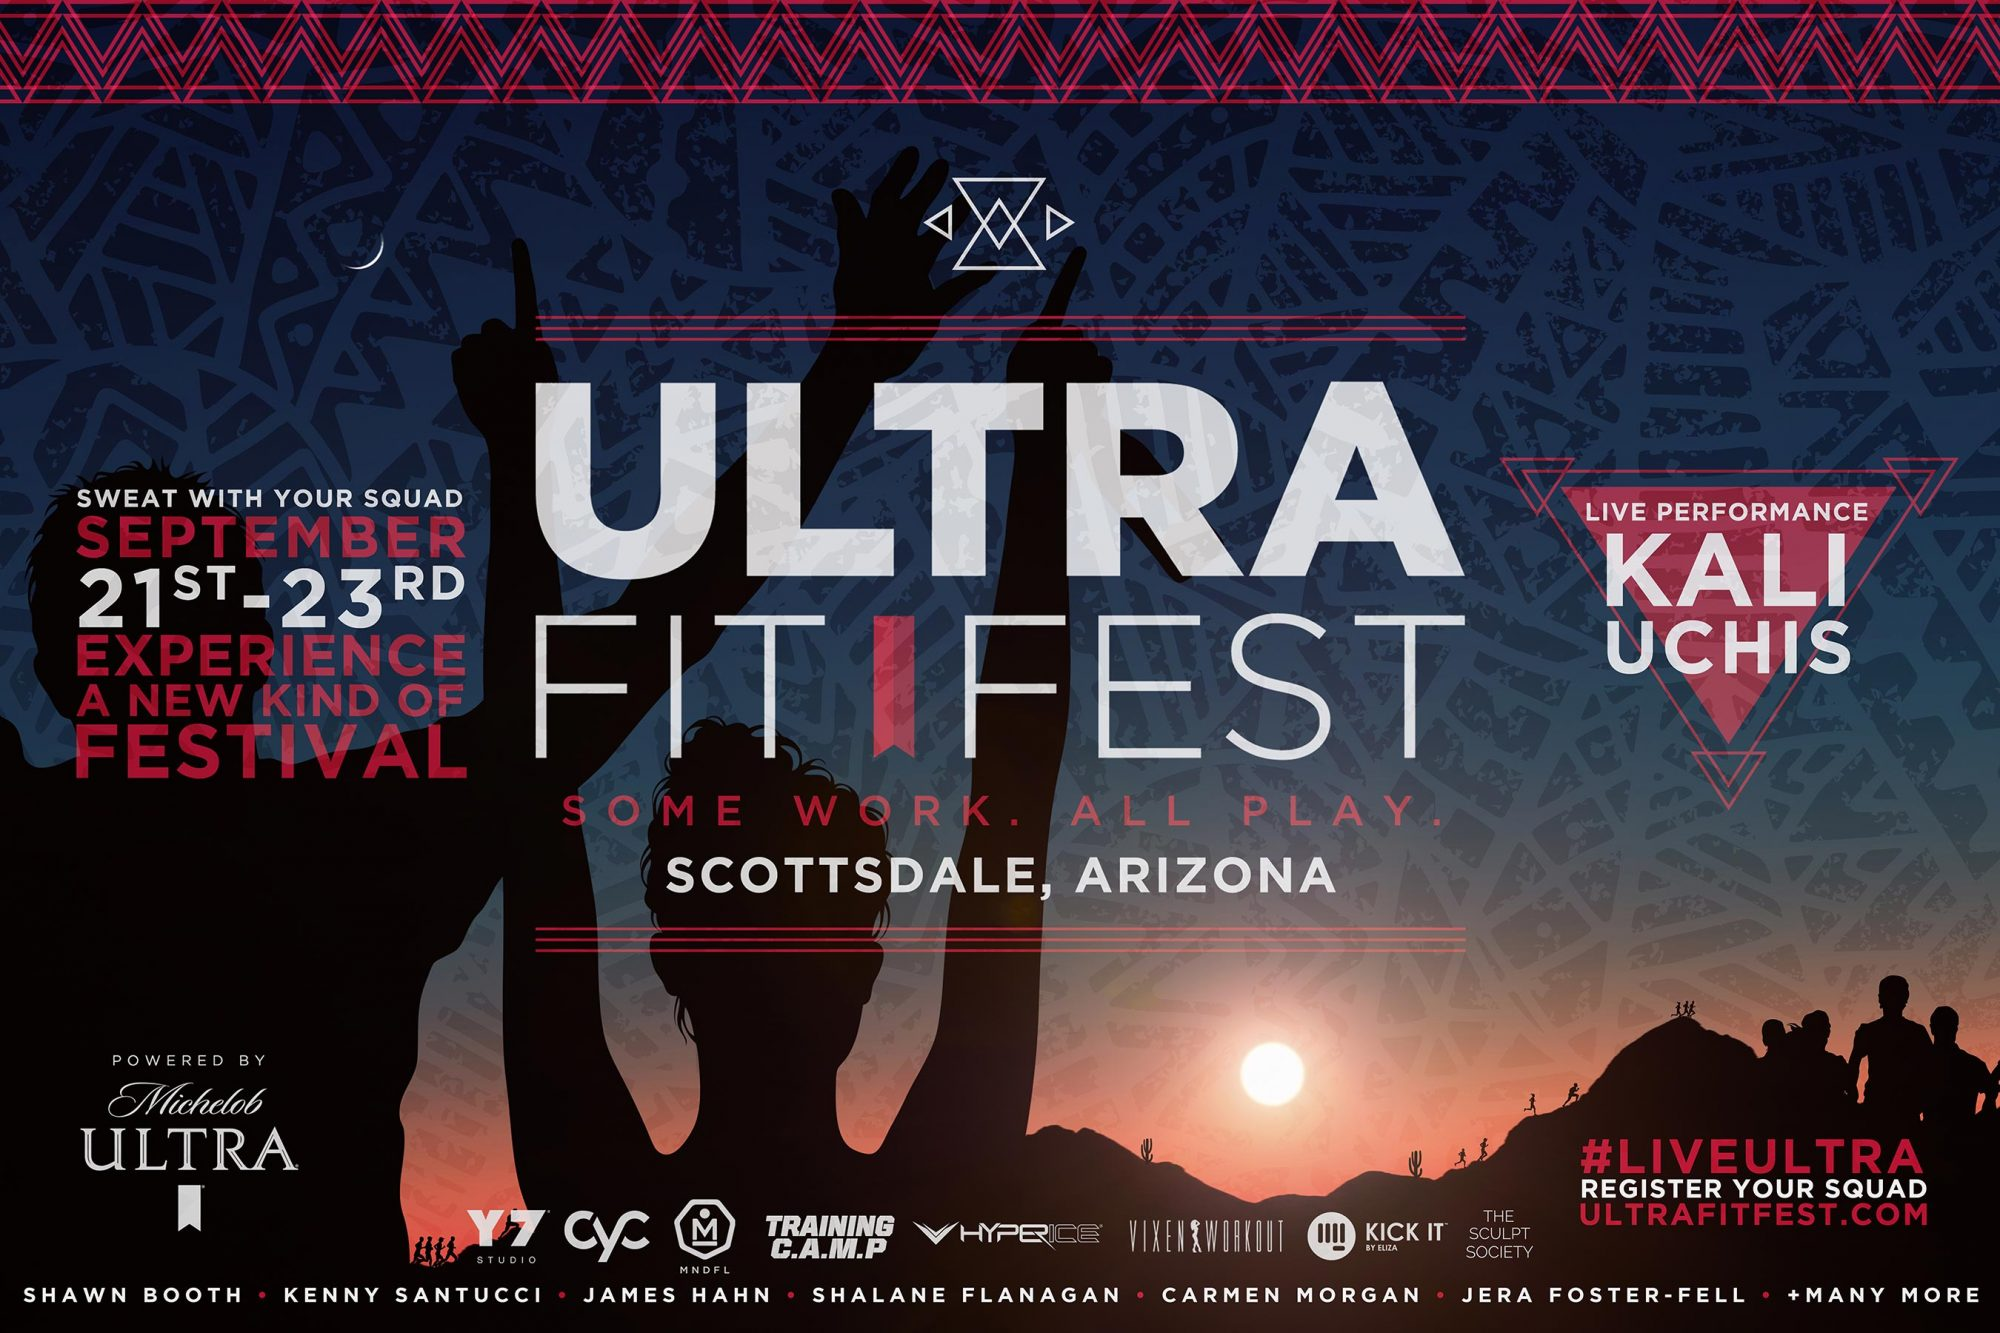 Ultra Fit Fest Poster CR: Michelob ULTRA